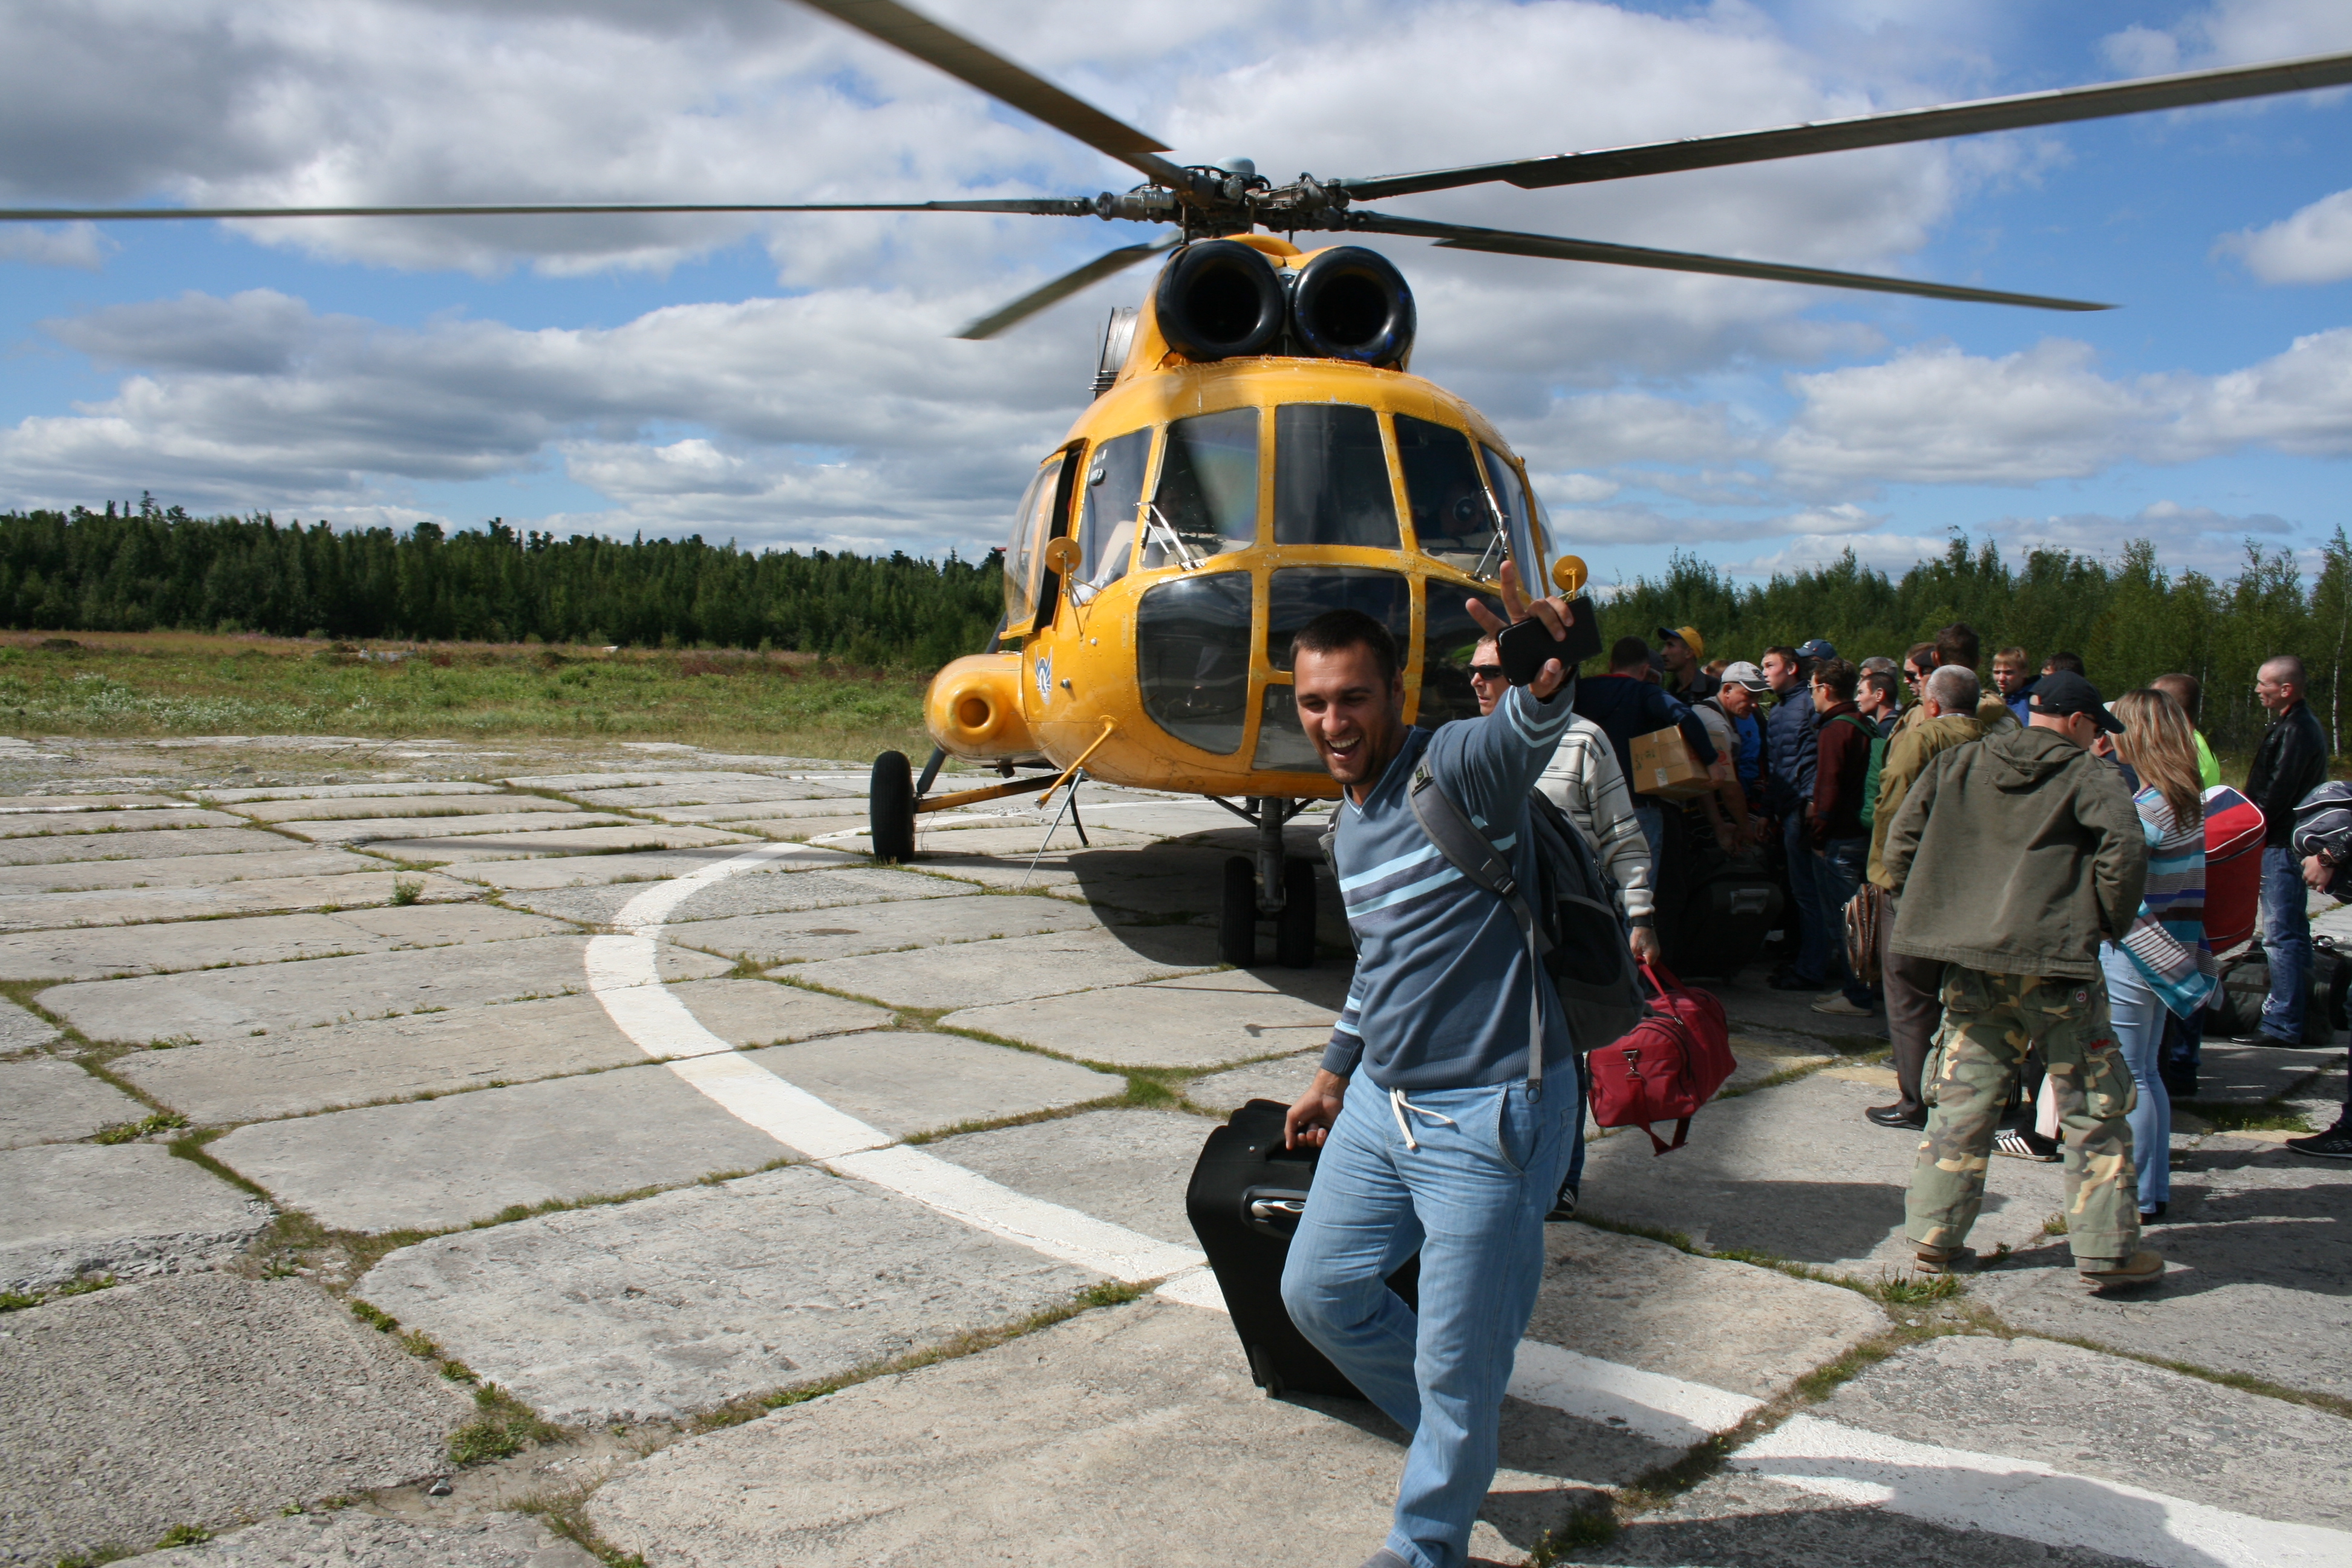 man arriving on helicopter, Adult, Person, Travel, Transportation, HQ Photo